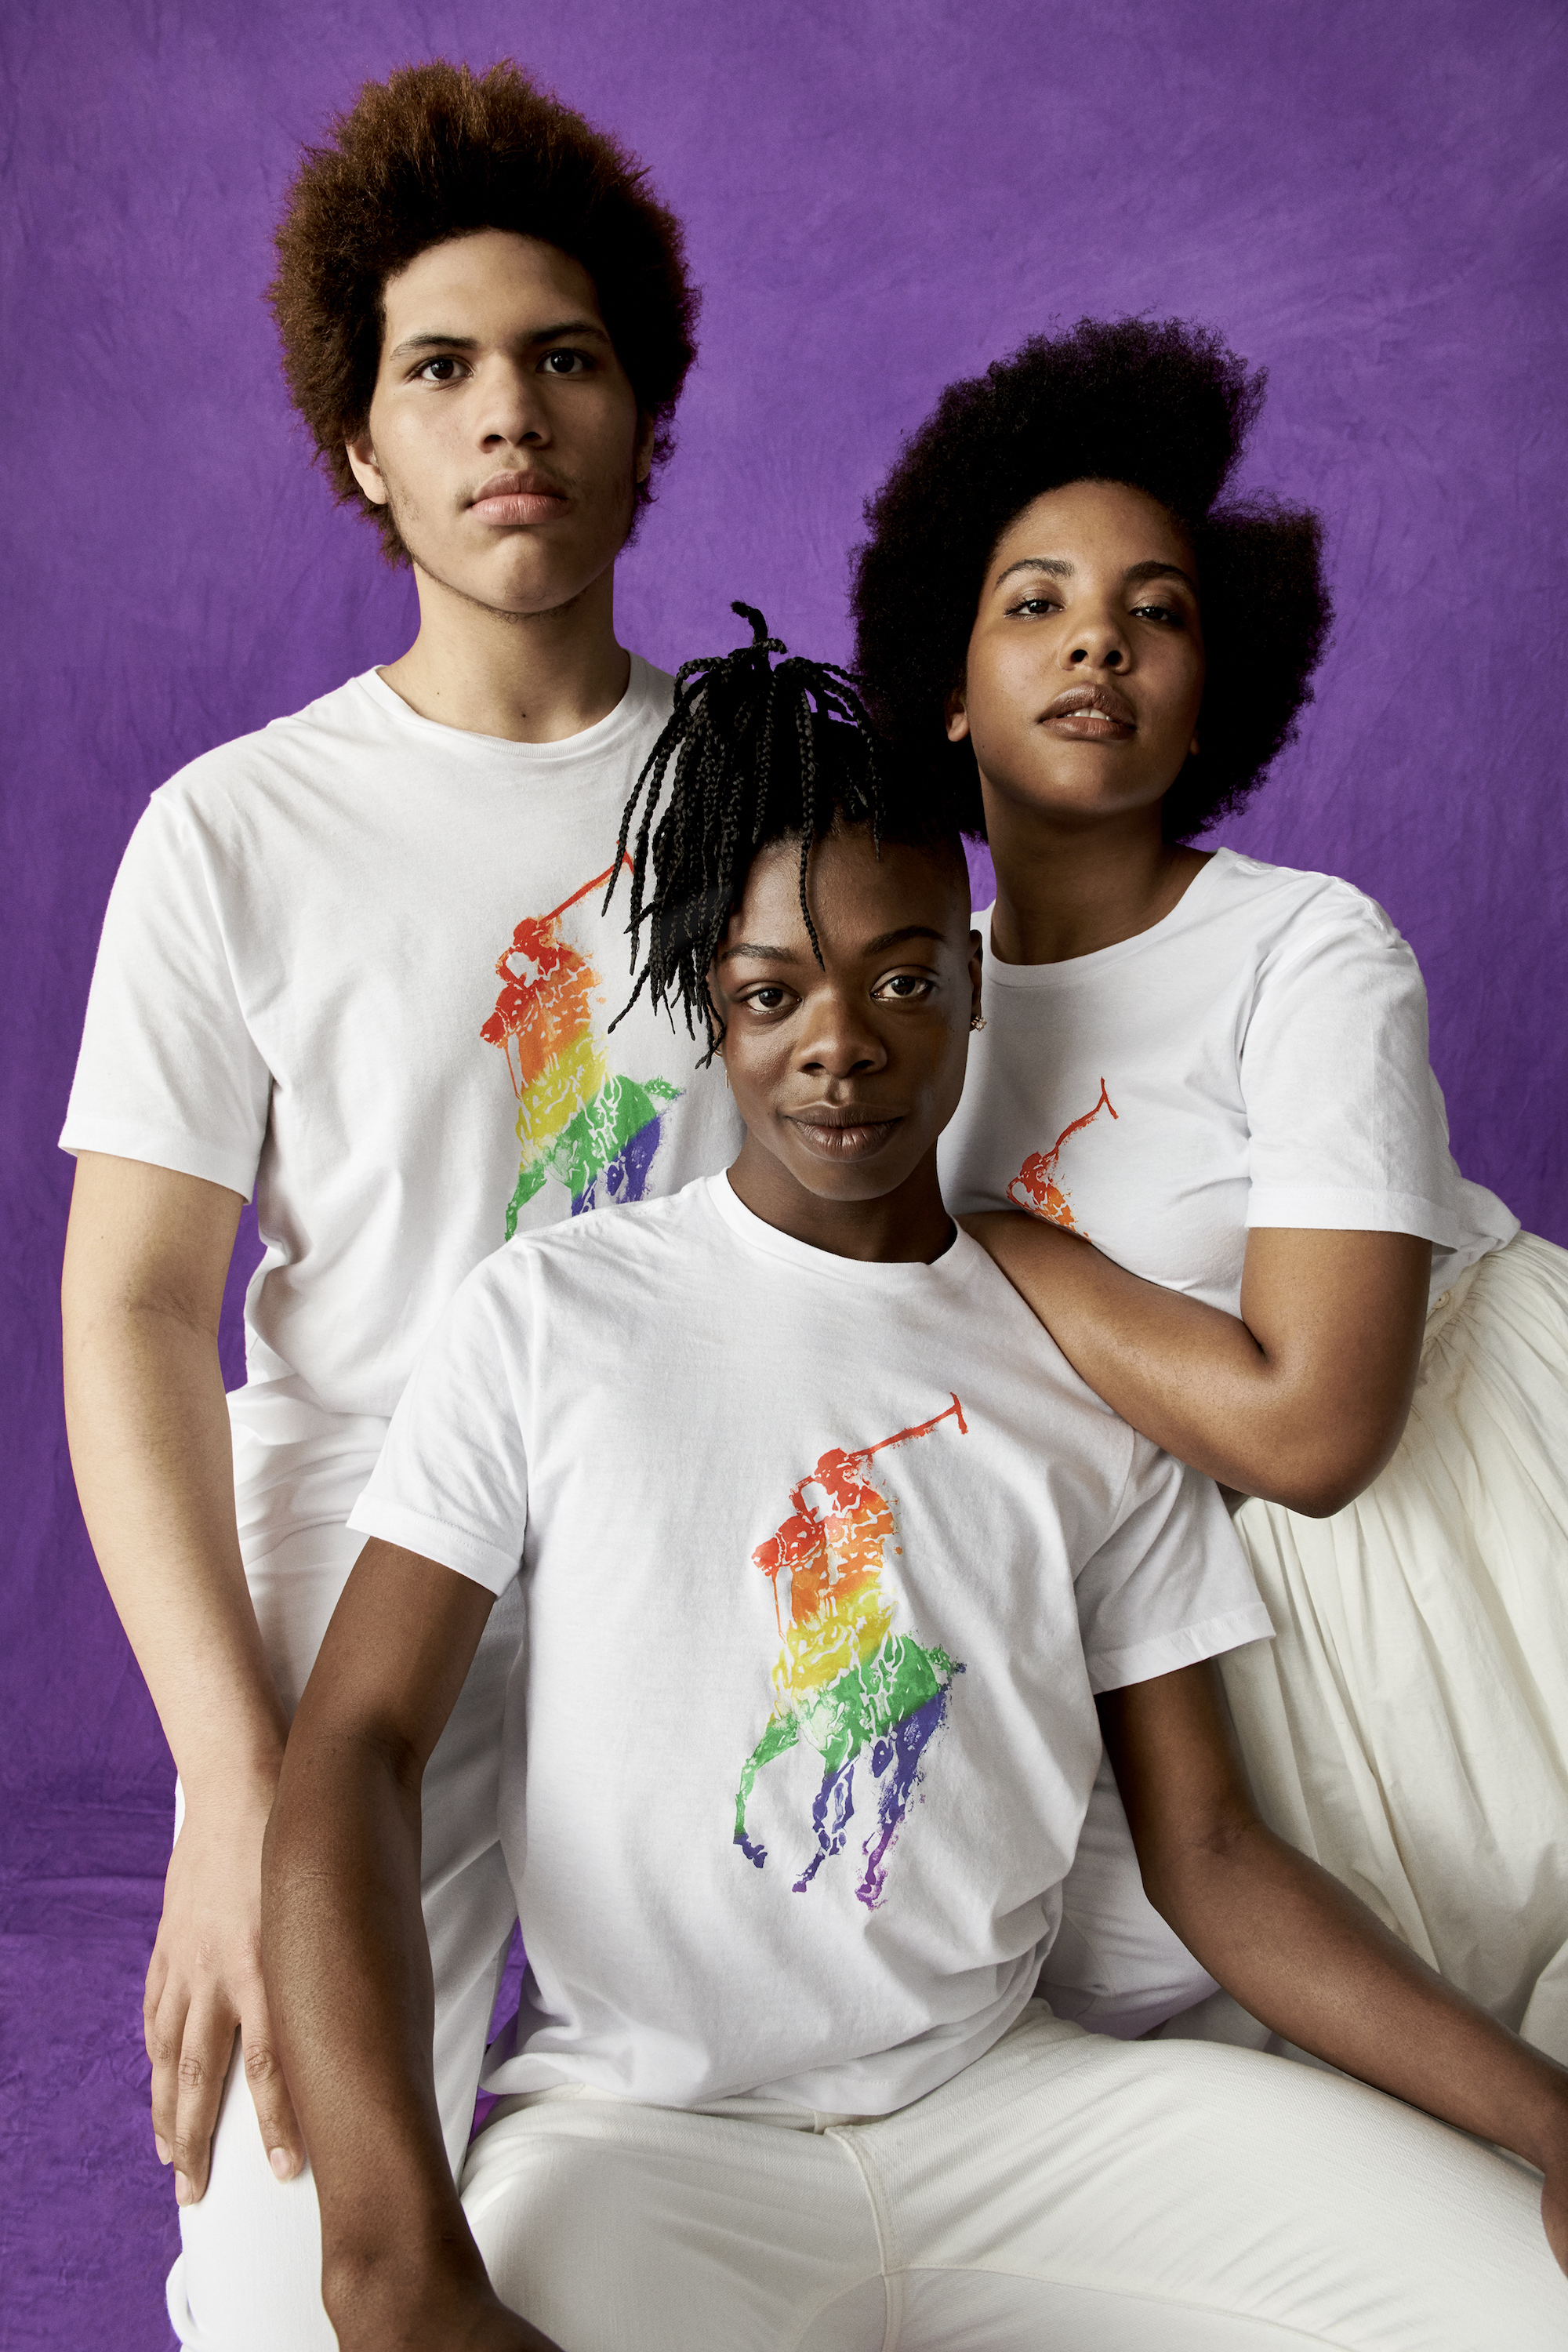 Ralph Lauren unveils its Pride collection featuring Evrisha, Tyriq & Cory